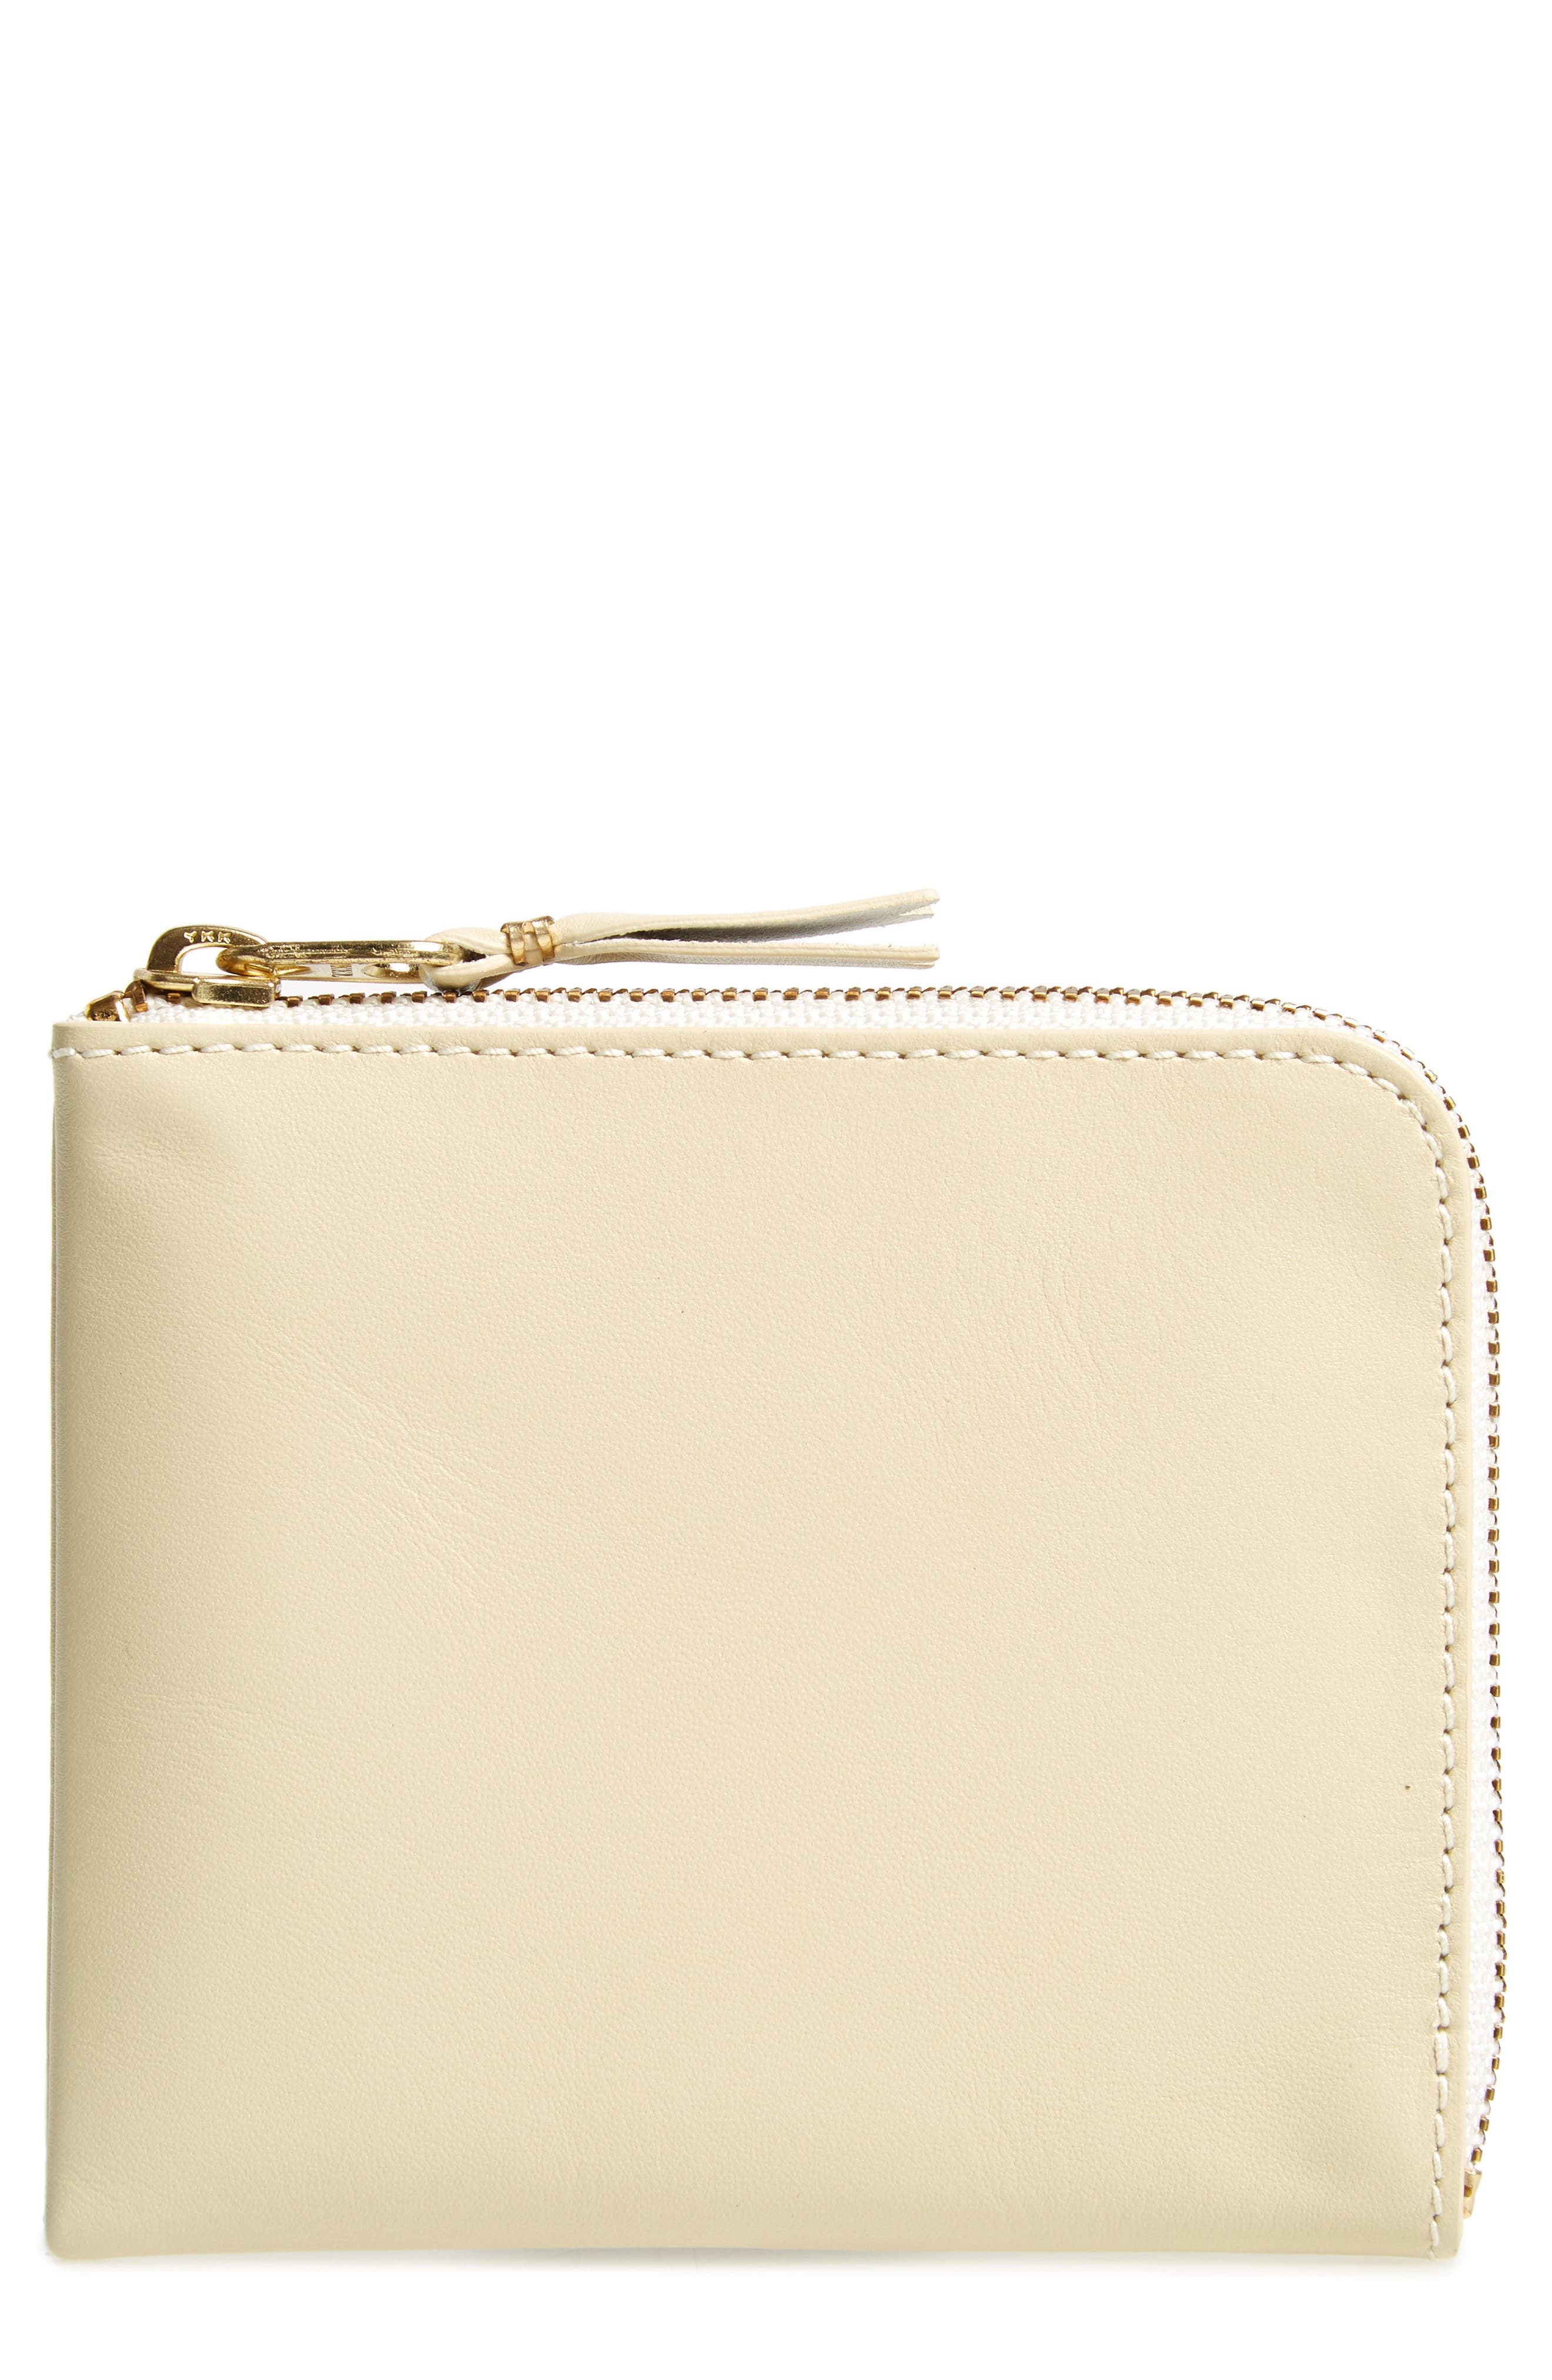 Classic Leather Line Wallet,                         Main,                         color, OFF WHITE